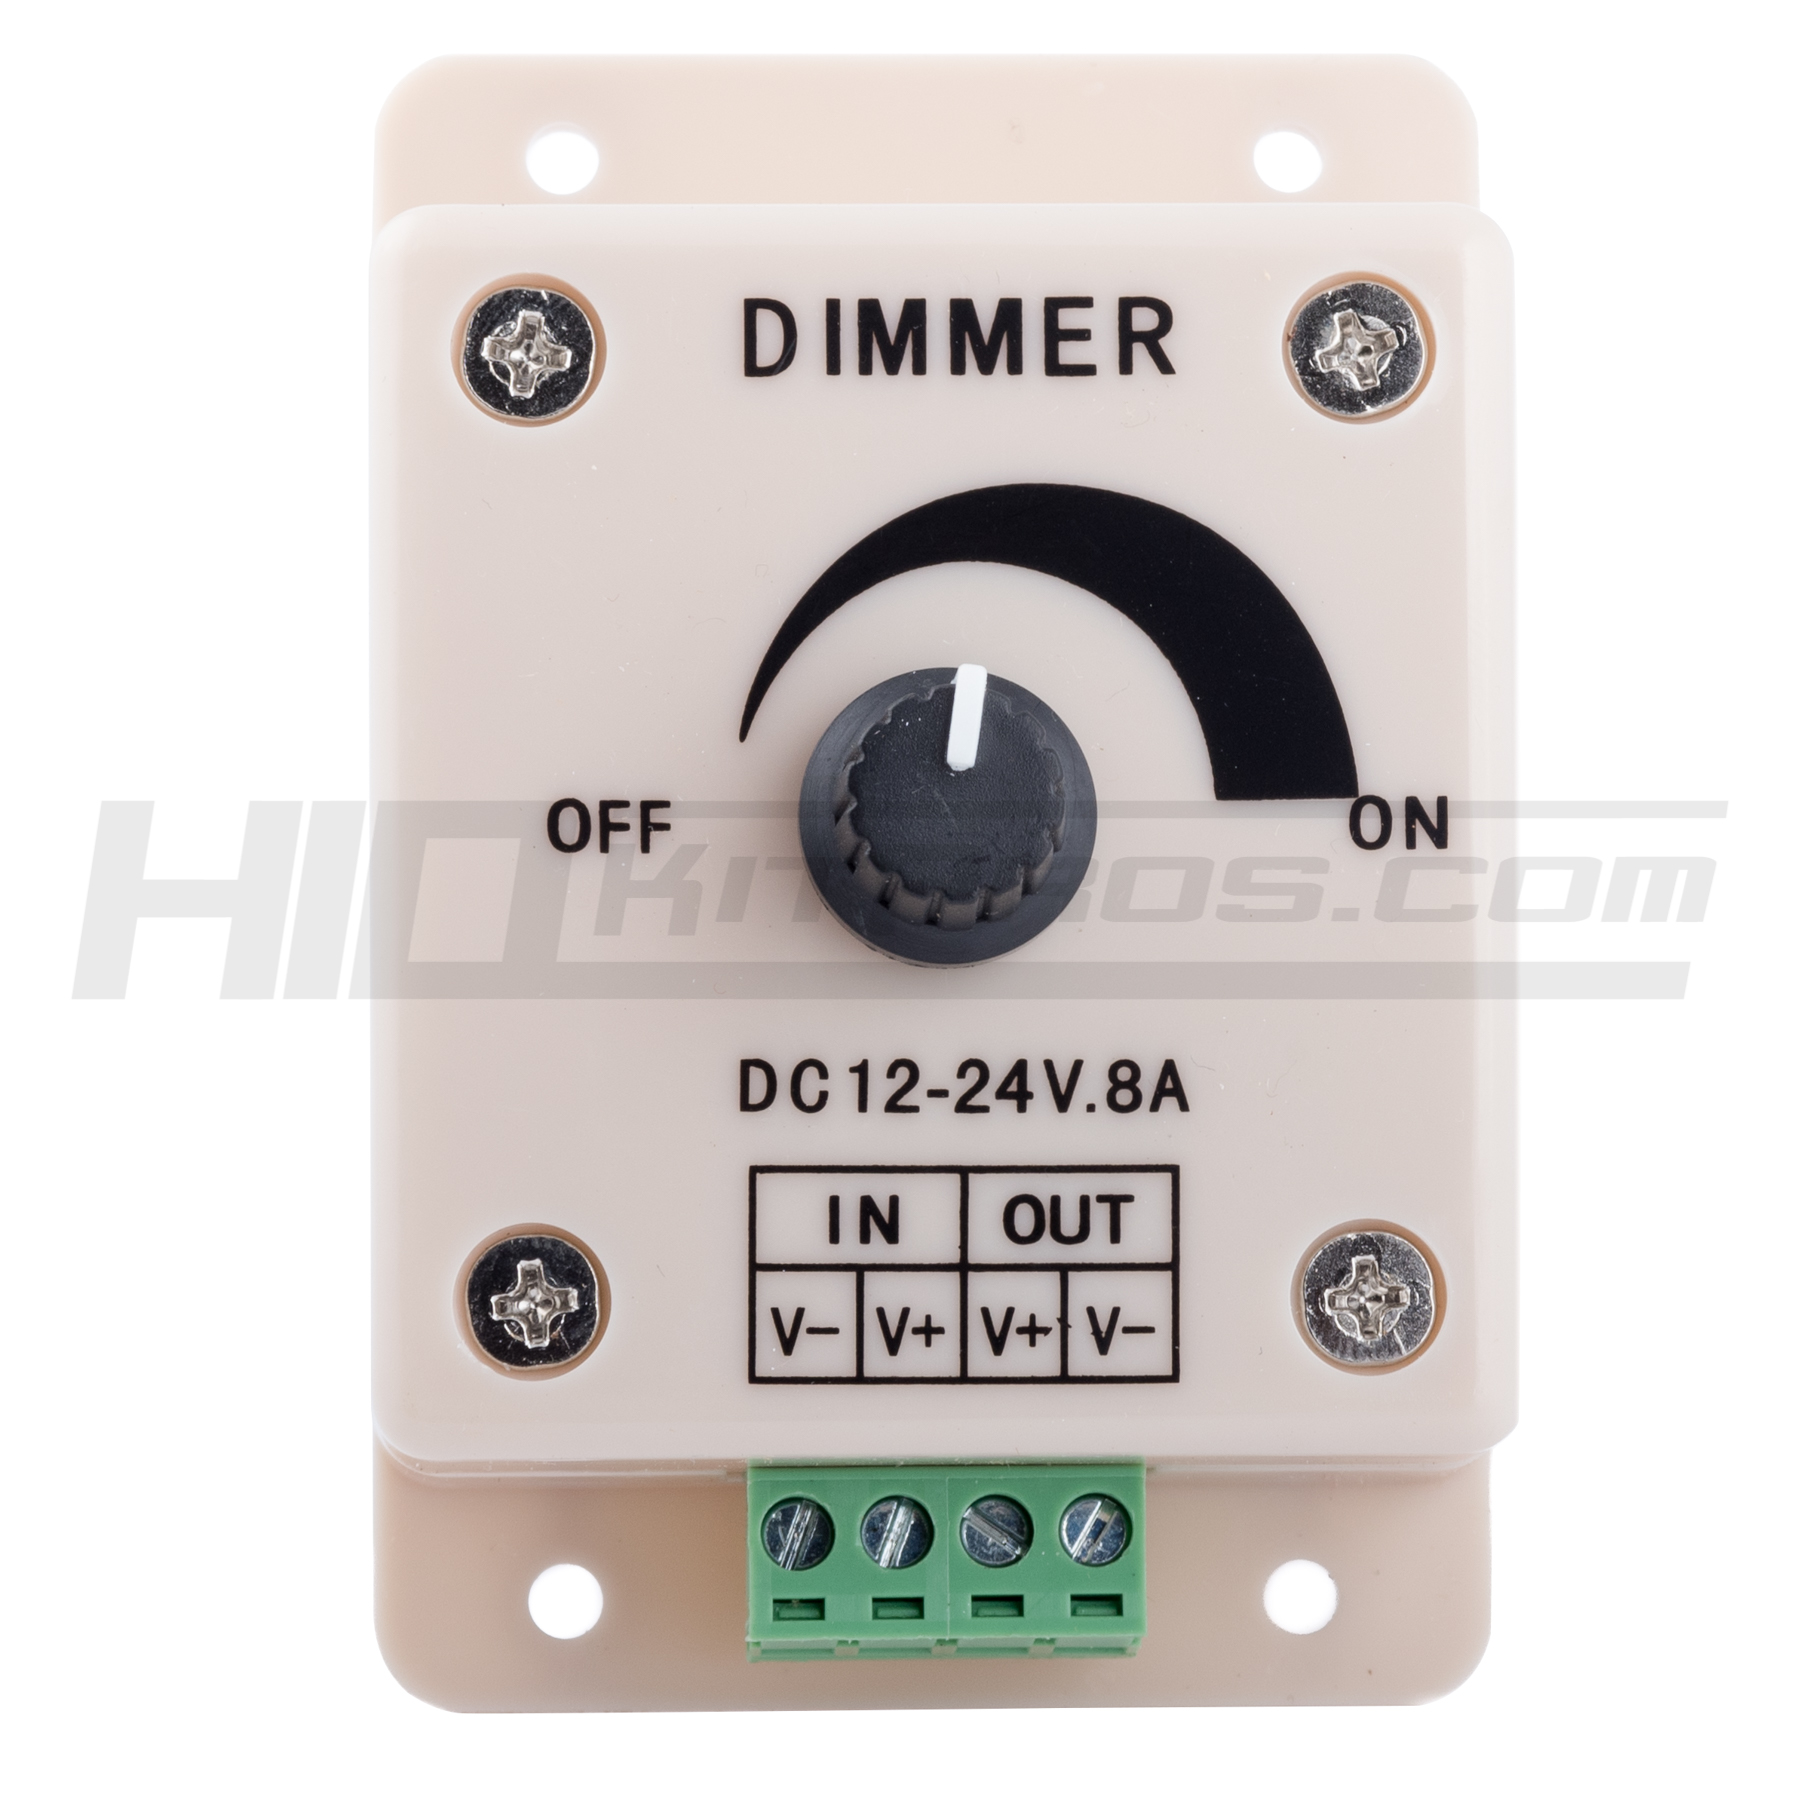 led dimmable packaged packaging dimswclm view cordless dimmer retail in lighting bs switch promier light with p solutions cob quick home